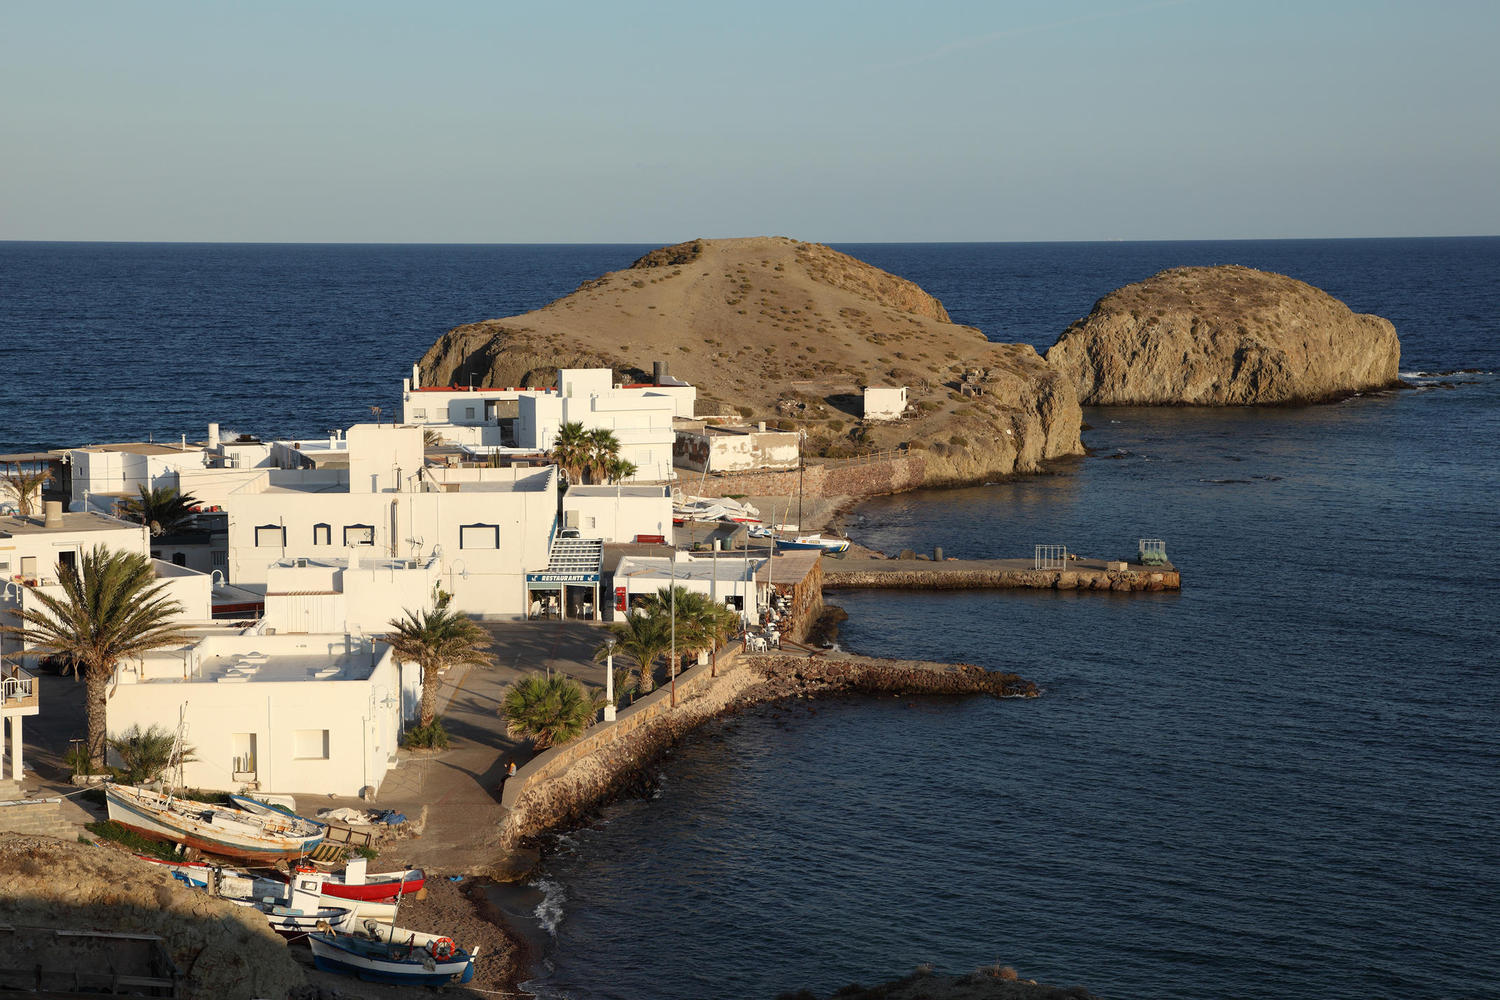 The tiny fishing village of Isleta del Moro, where you can have the best fish cassoulete in the world!